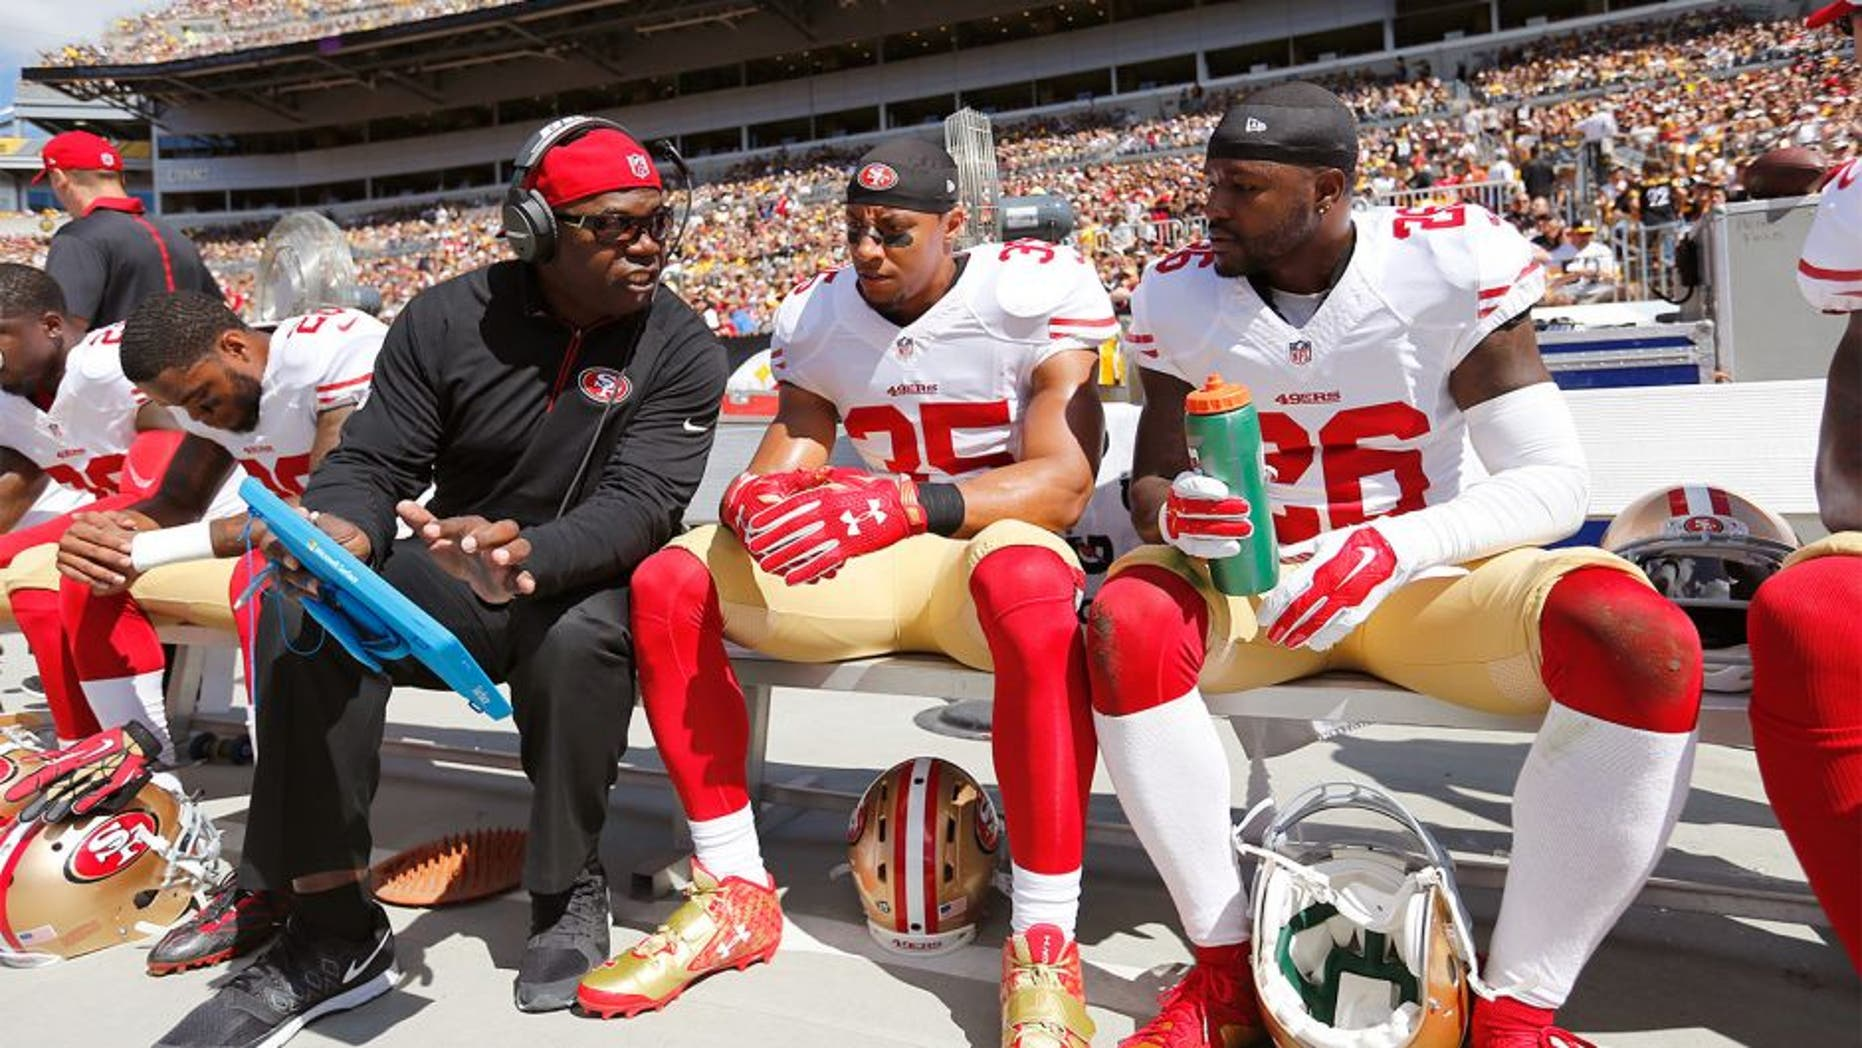 PITTSBURGH, PA - SEPTEMBER 20: Defensive Backs Coach Tim Lewis of the San Francisco 49ers talks with Eric Reid #35 and Tramaine Brock #26 on the sideline during the game against the Pittsburgh Steelers at Heinz Field on September 20, 2015 in Pittsburgh, Pennsylvania. The Steelers defeated the 49ers 43-18. (Photo by Michael Zagaris/San Francisco 49ers/Getty Images)